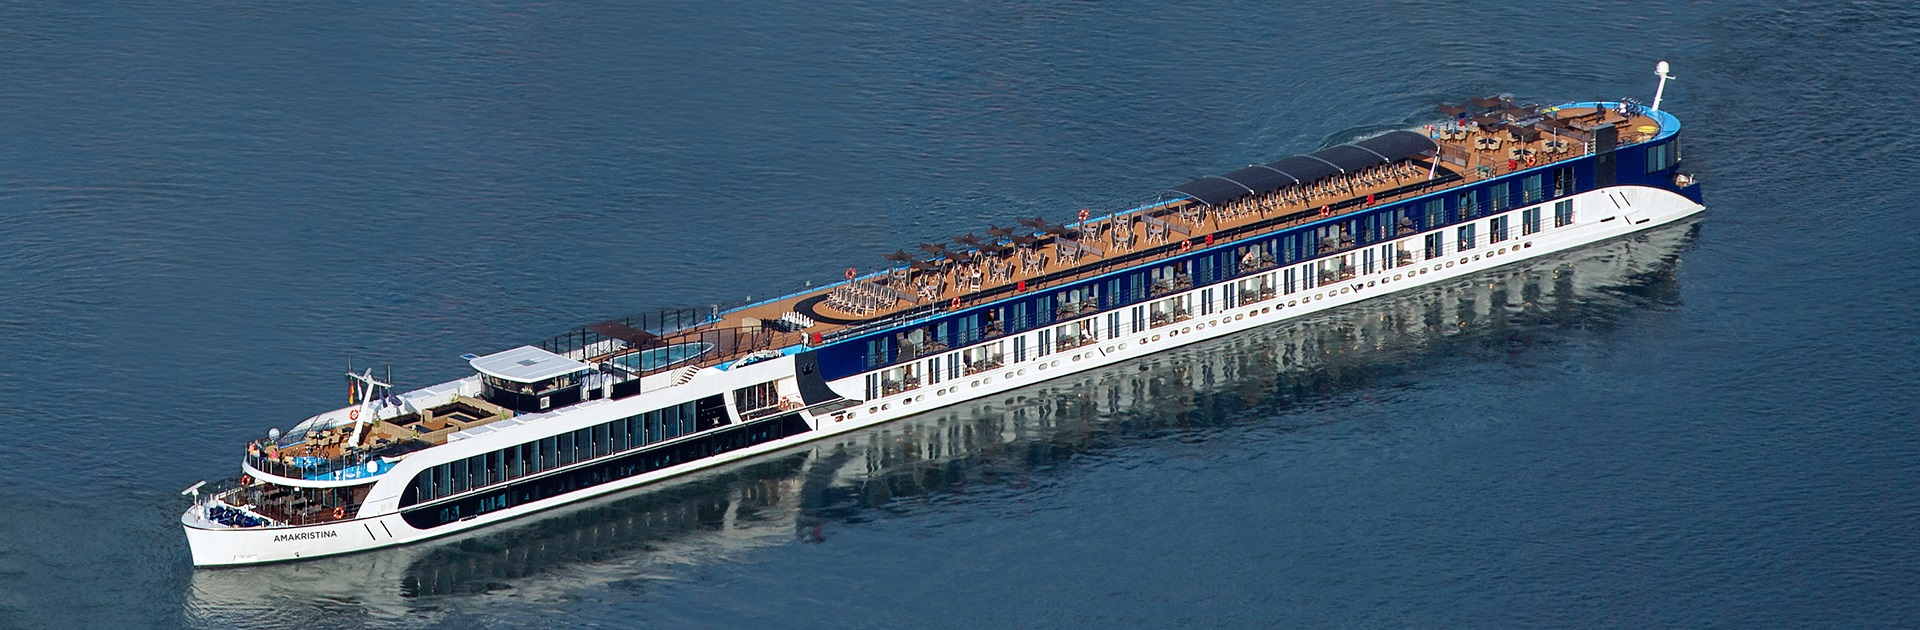 AmaWaterways